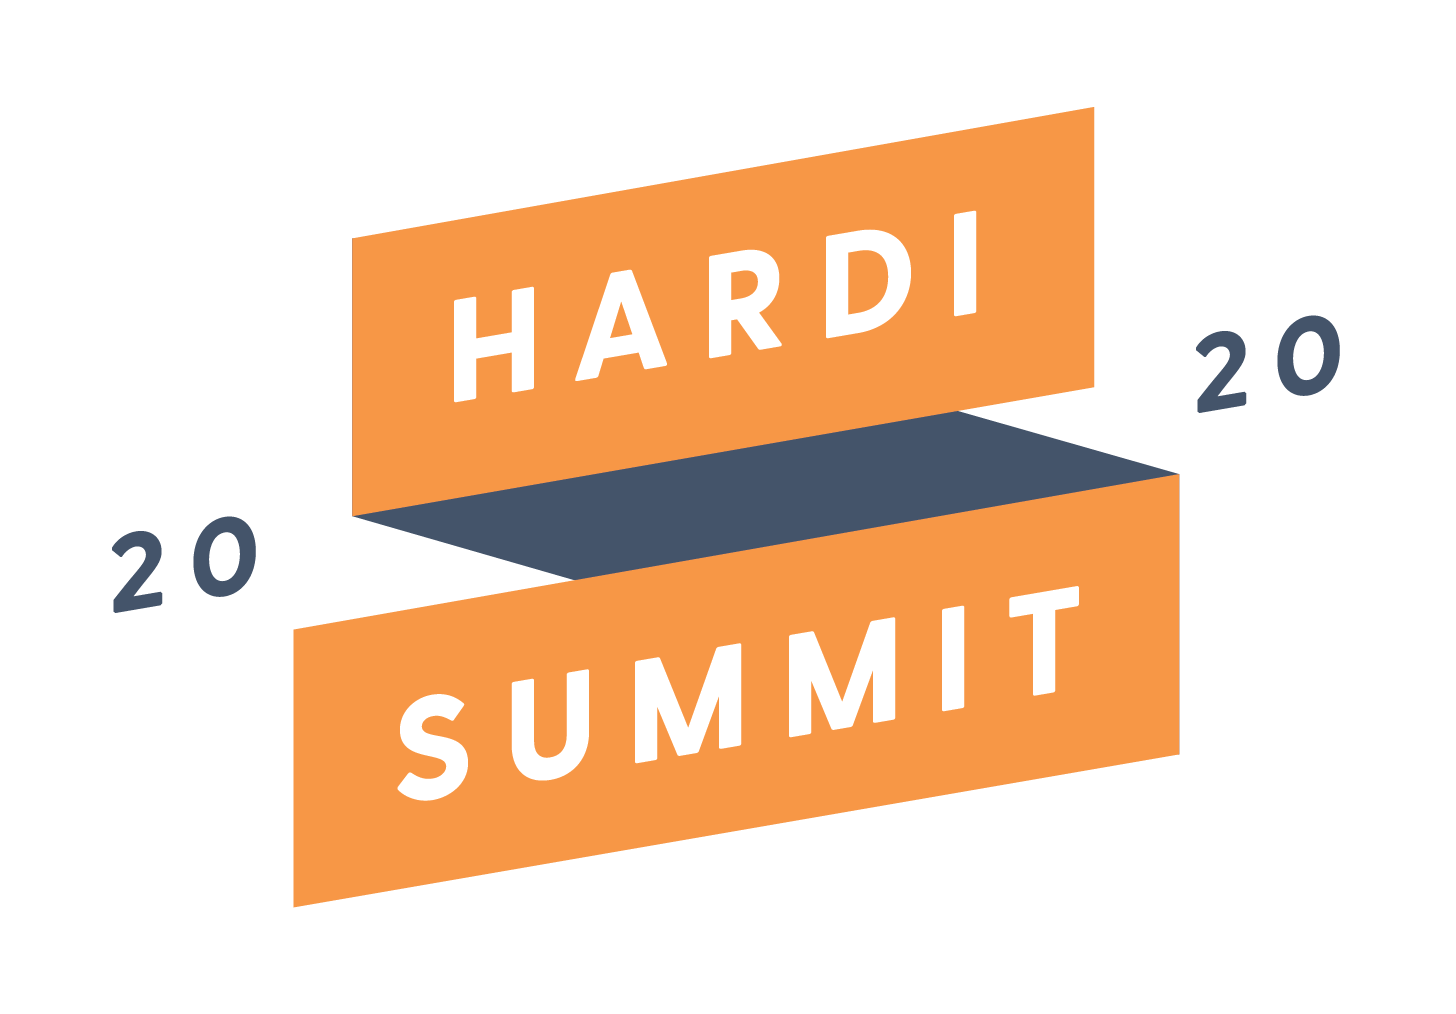 HARDI Summit 2020.